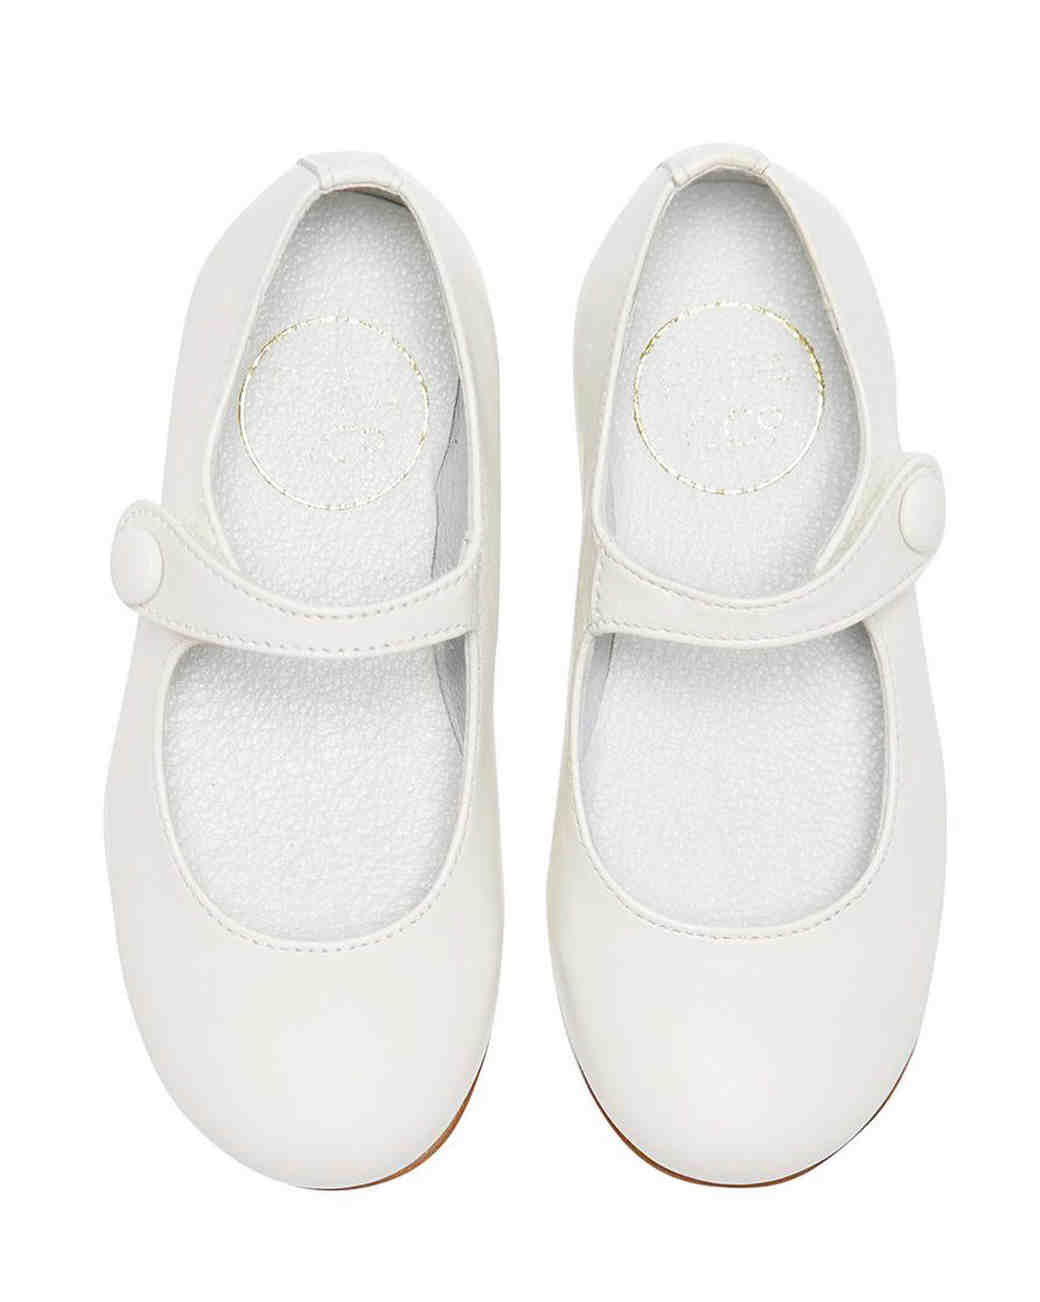 21de722e662 Adorable Shoes to Complete Your Flower Girl s Big-Day Look